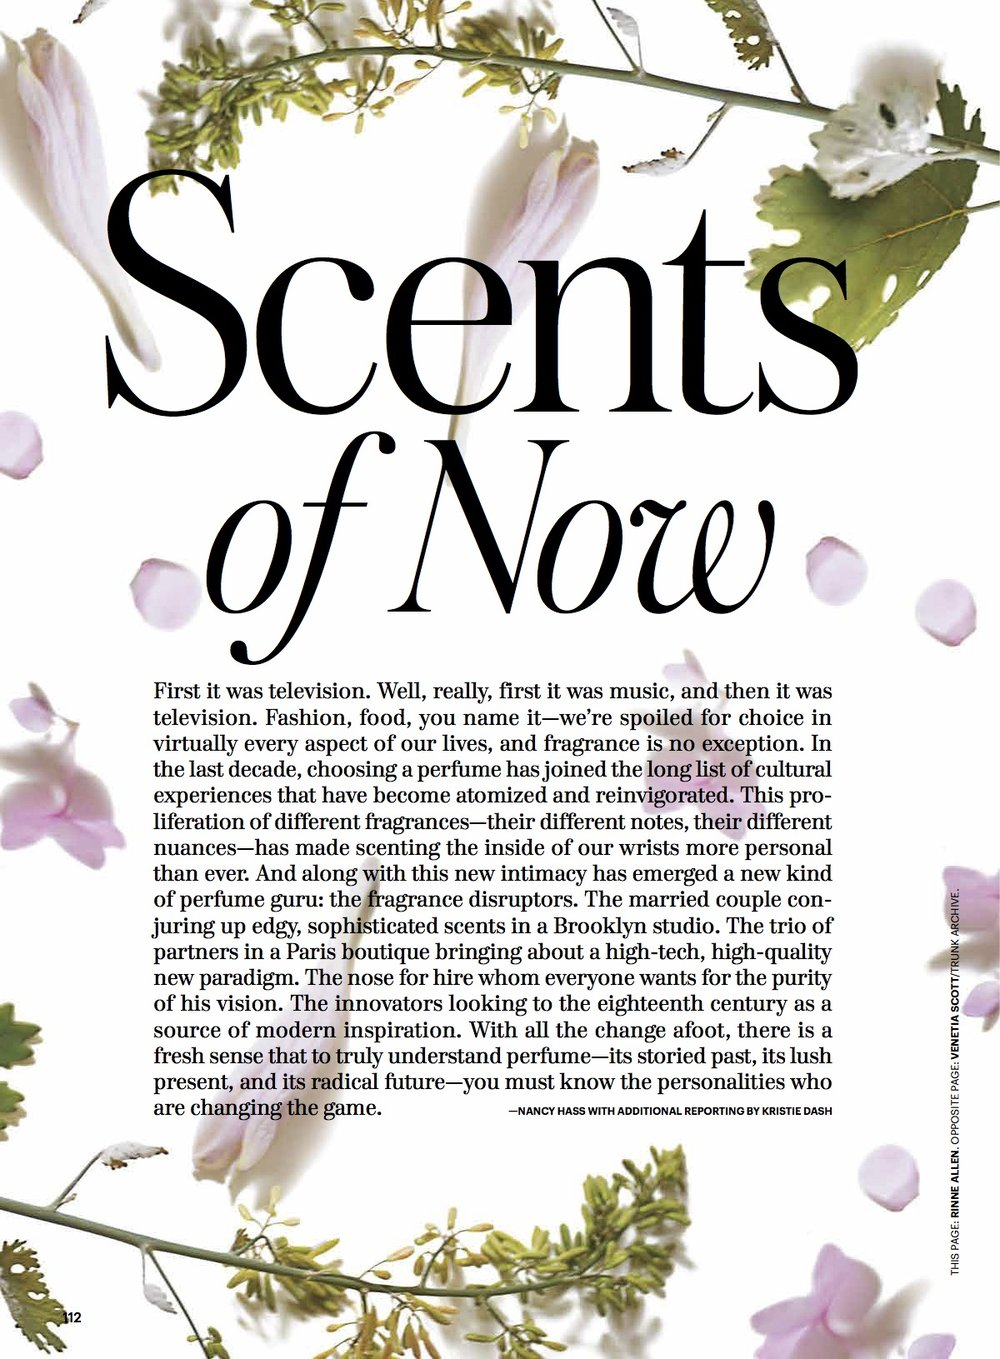 scents_of_now (1).jpg